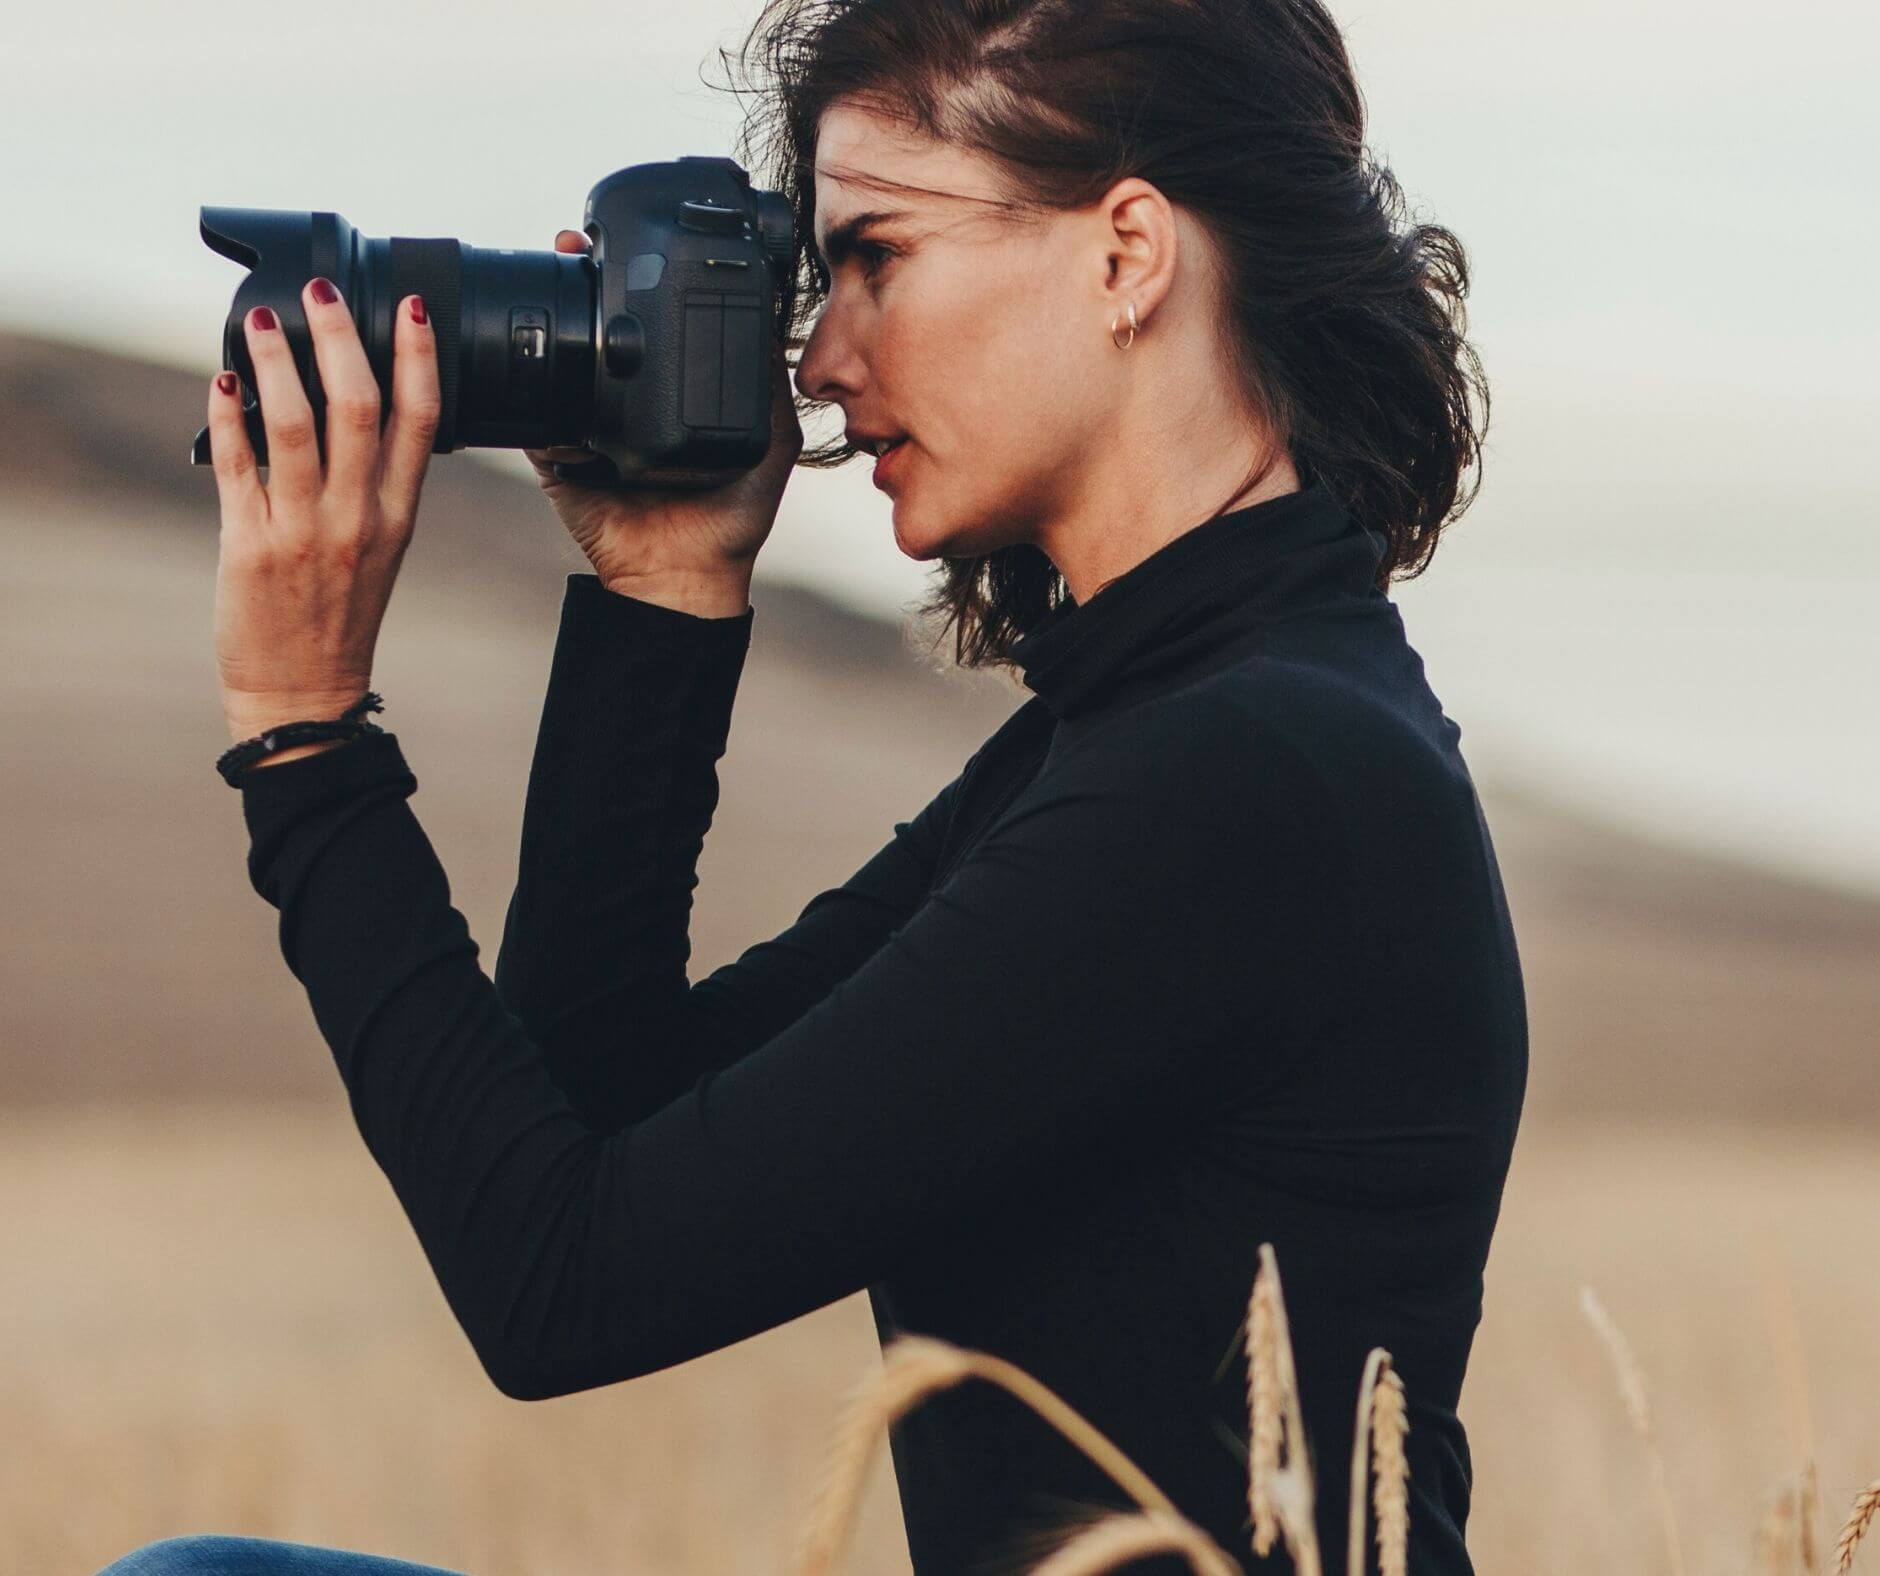 Photographer taking pictures for her website